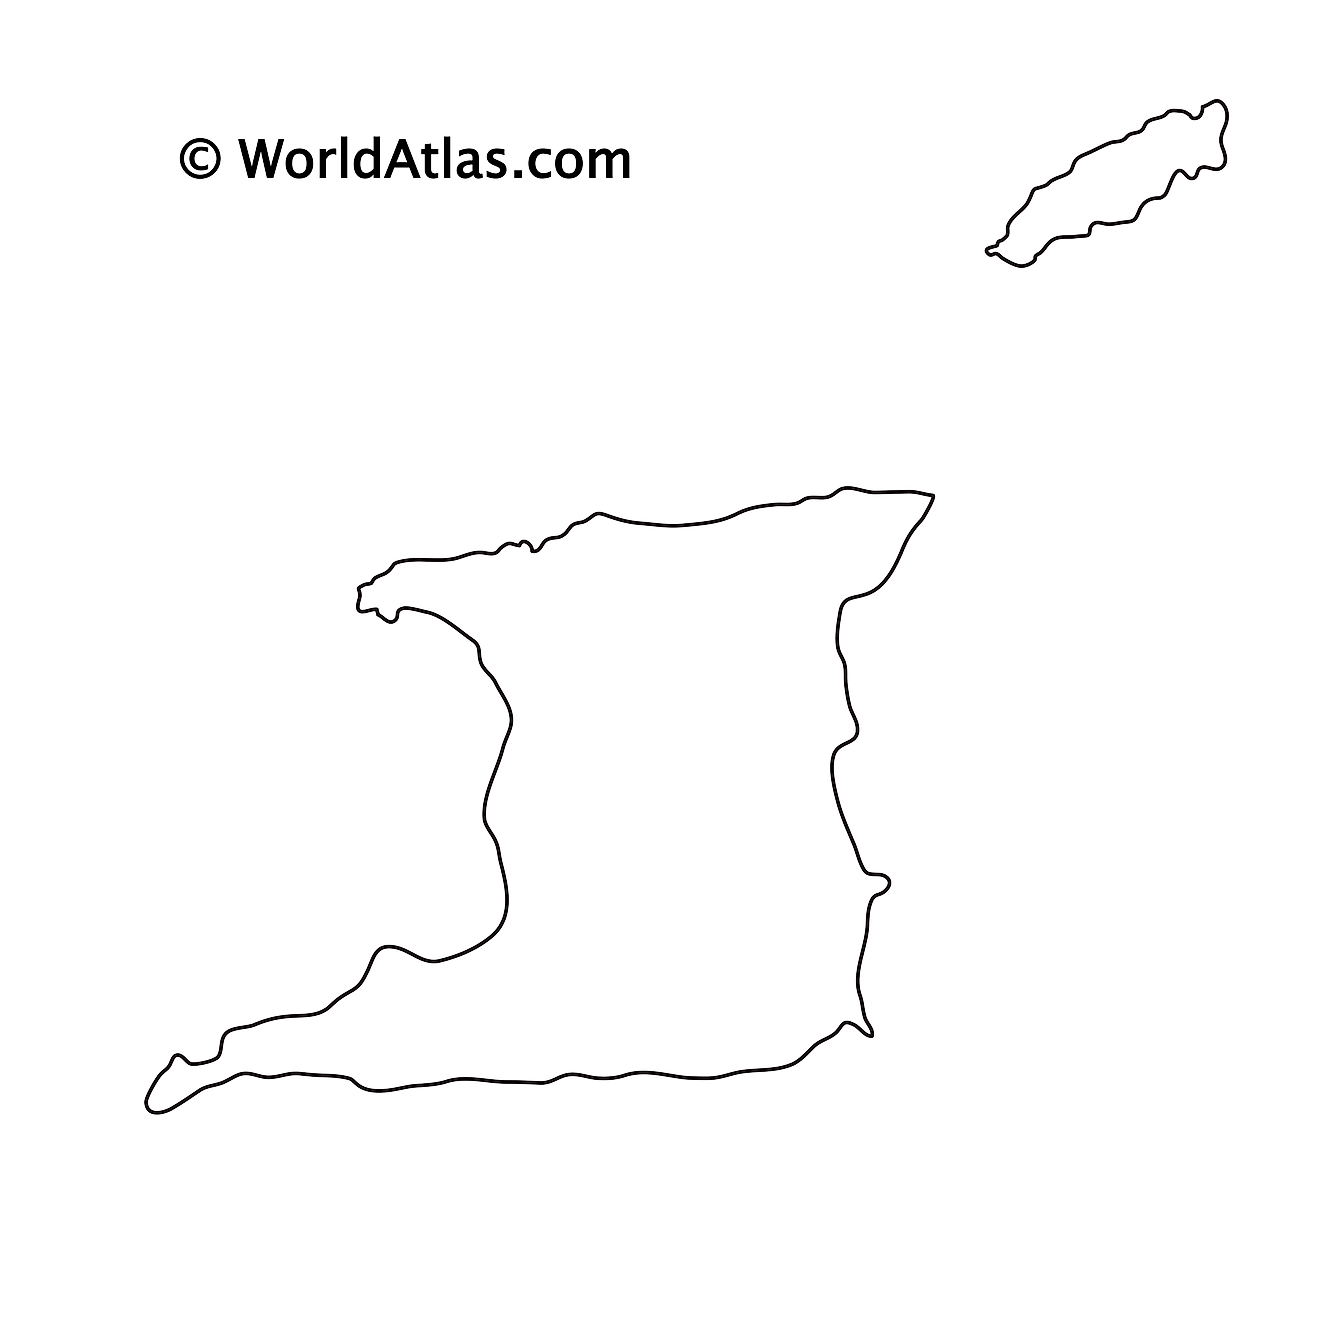 Blank Outline Map of Trinidad and Tobago